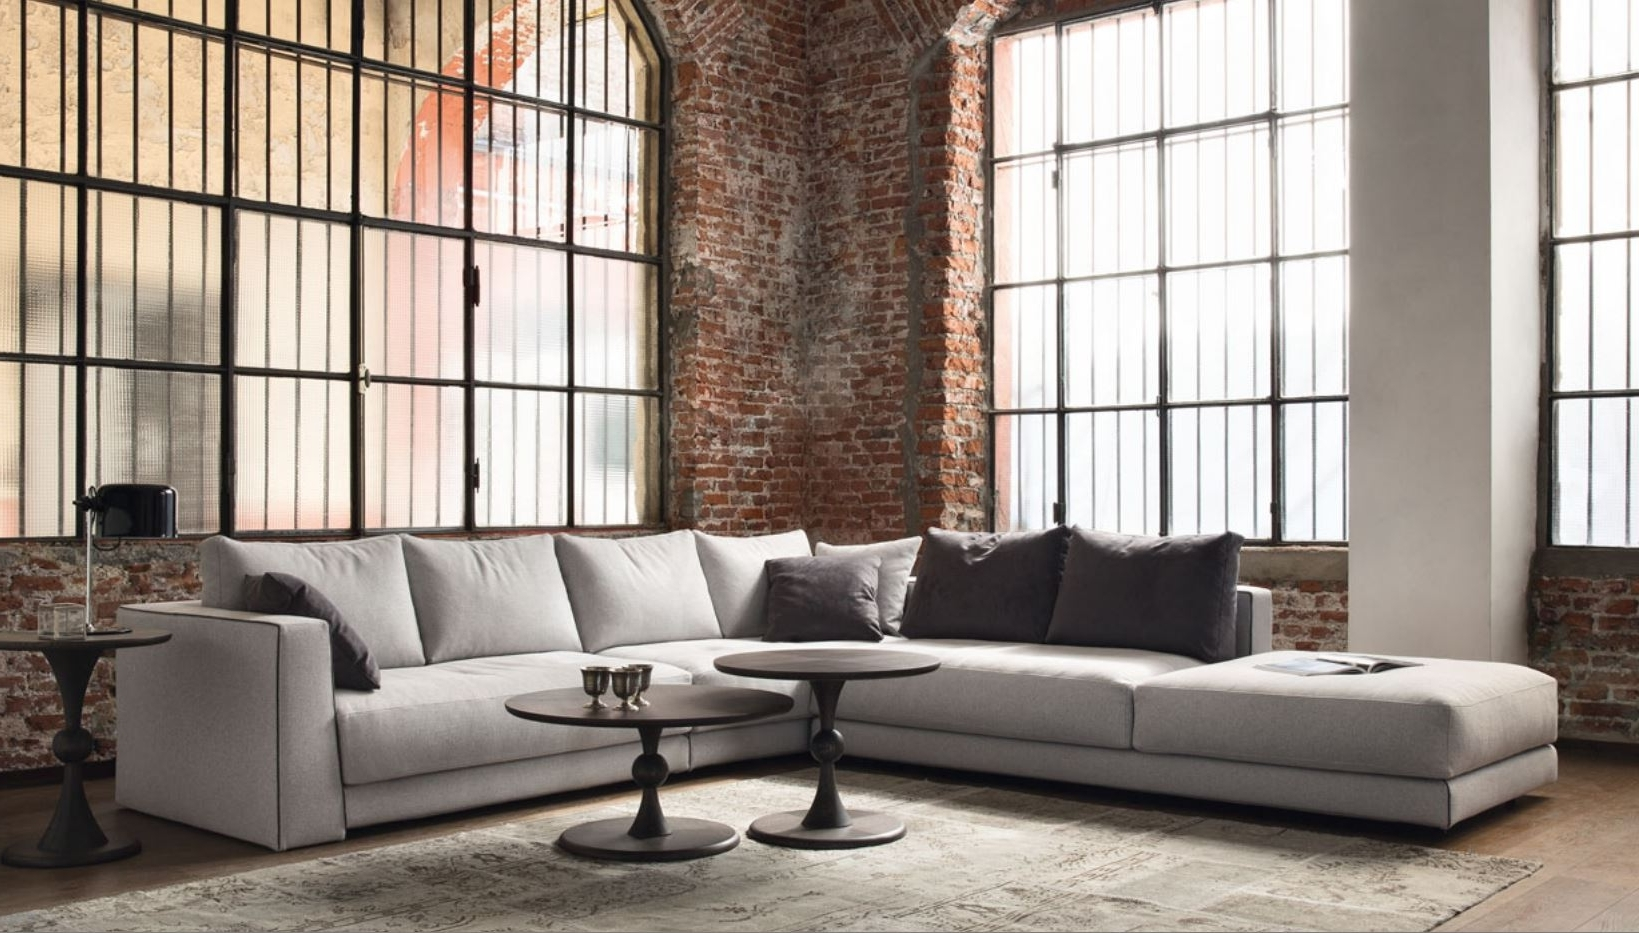 Modern Sofas,modern Furniture,design Sofas – Sectional Modern Sofa For Most Current Wide Sectional Sofas (View 14 of 20)